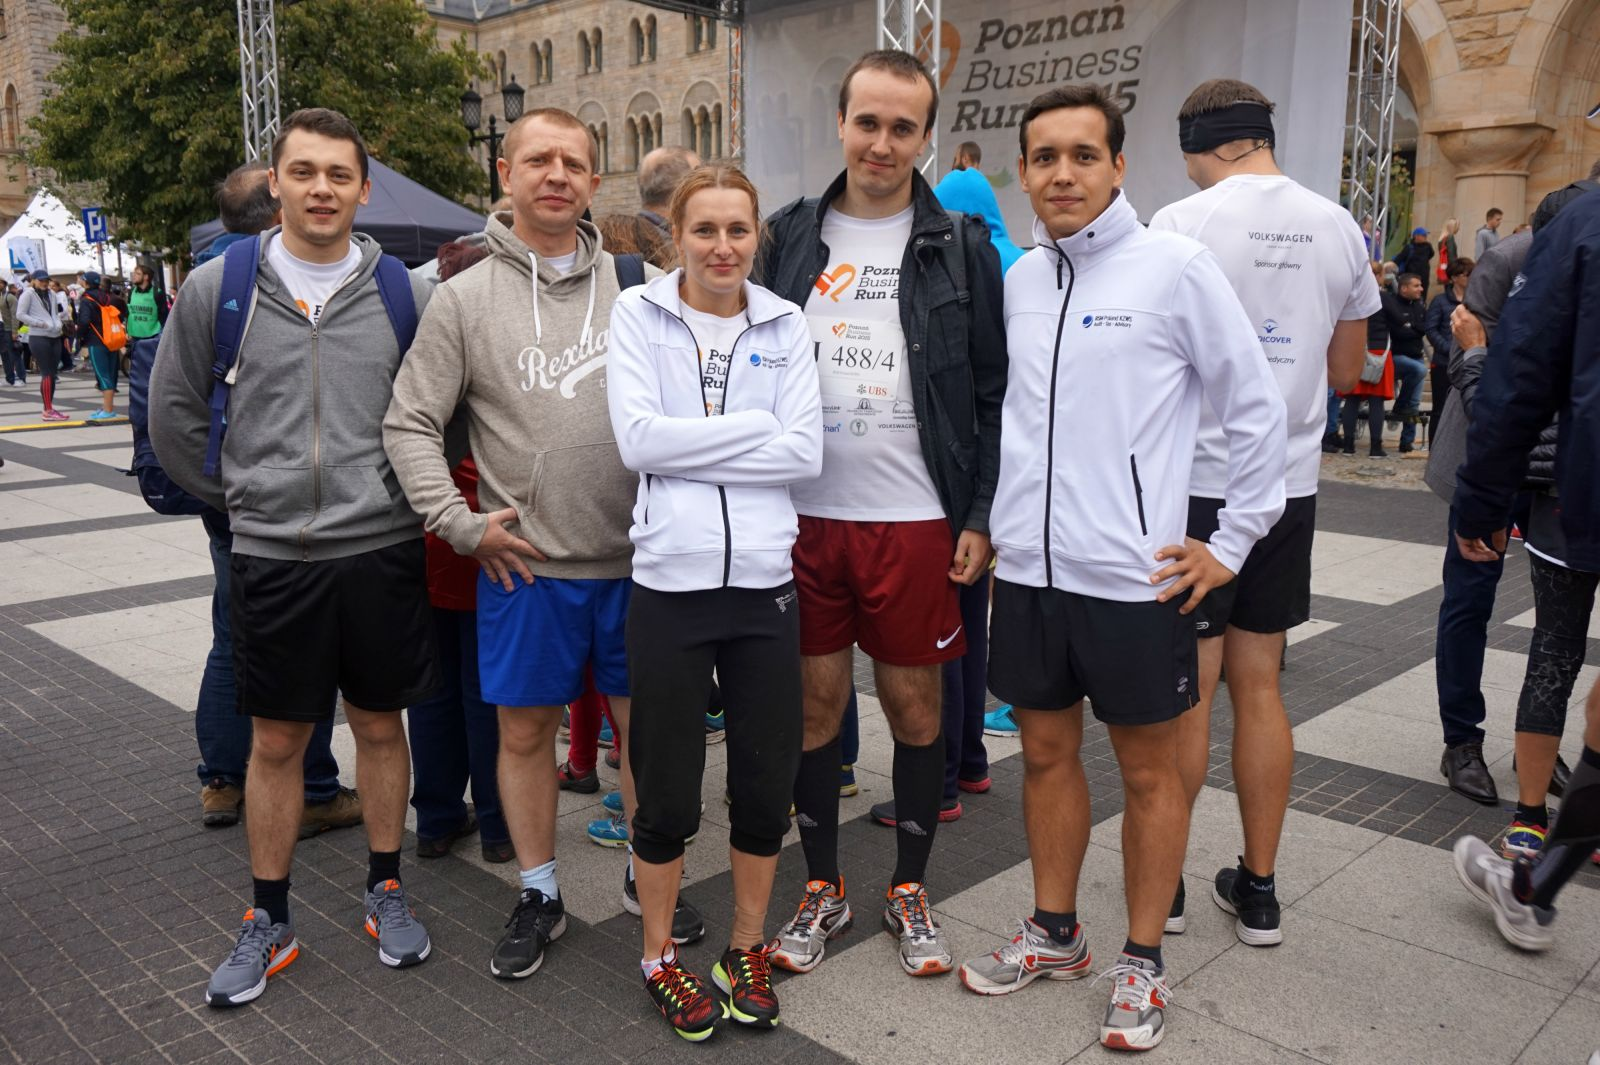 BusinessRun2015_1.JPG